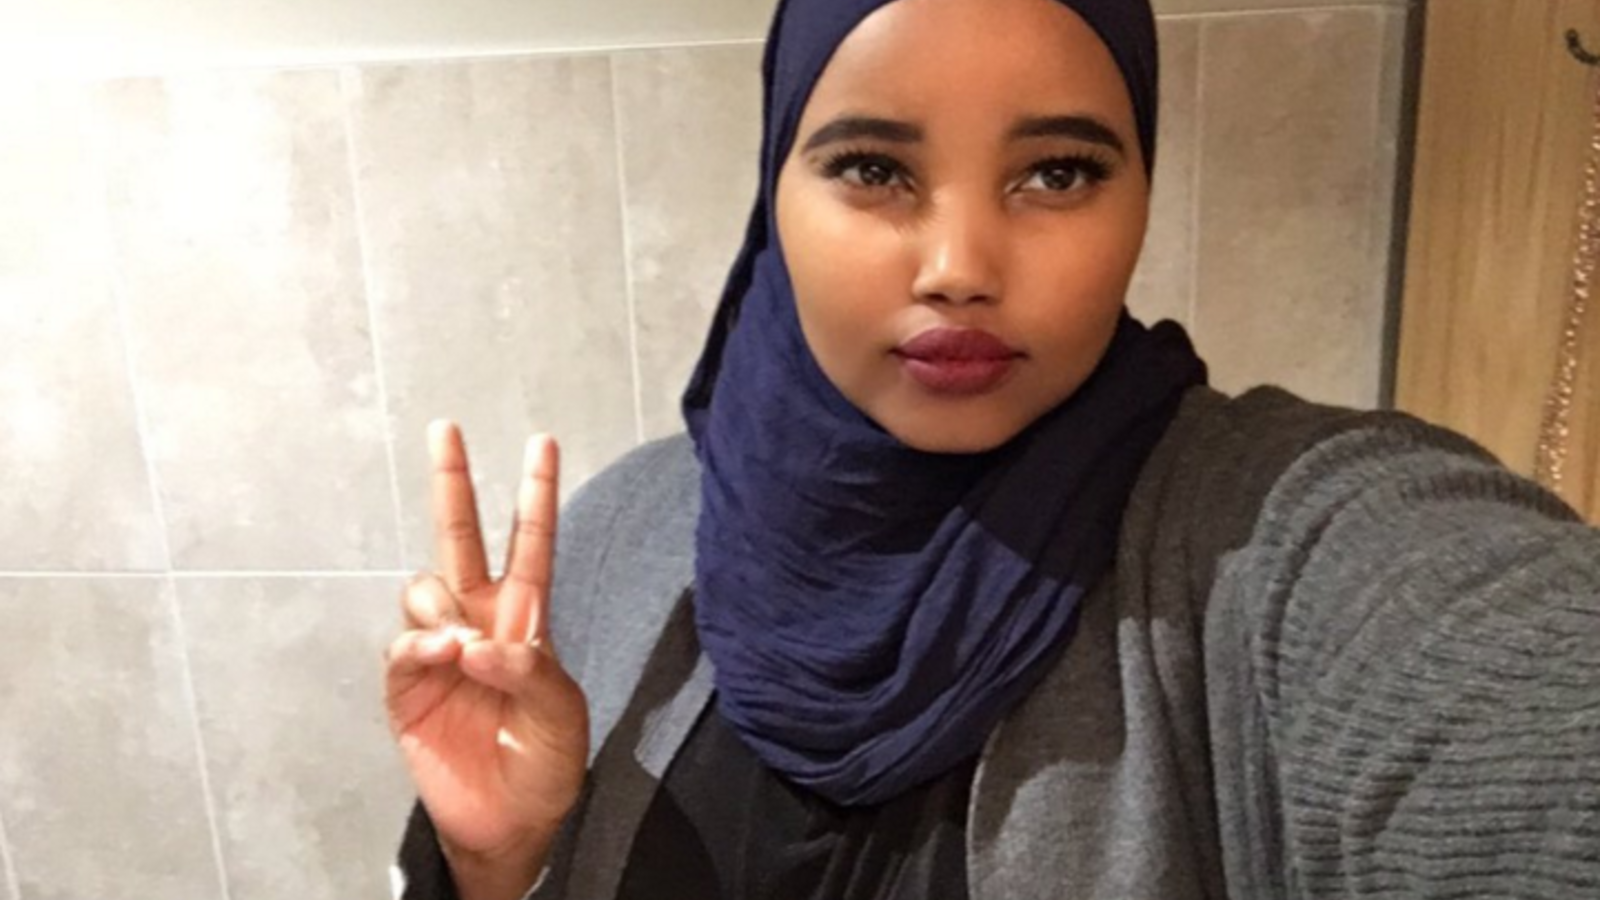 #NotYourRespectableHijabi sees Muslim girls fight back against being told not to wear makeup